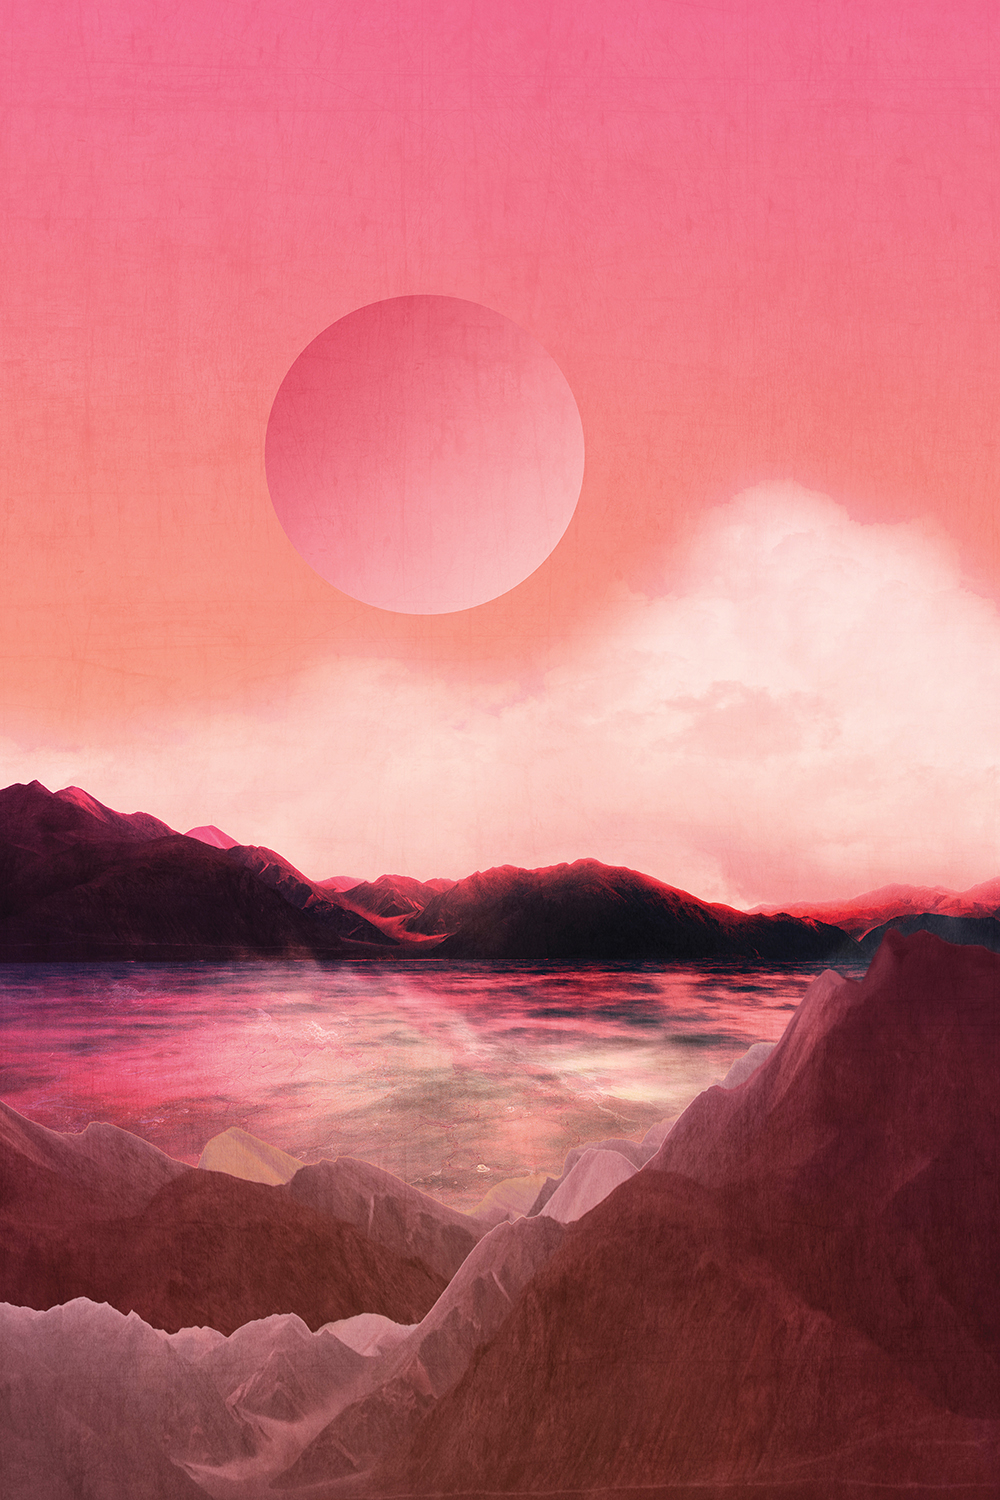 Graphic of a sun setting over a mountain and water landscape in a pink toned dusk